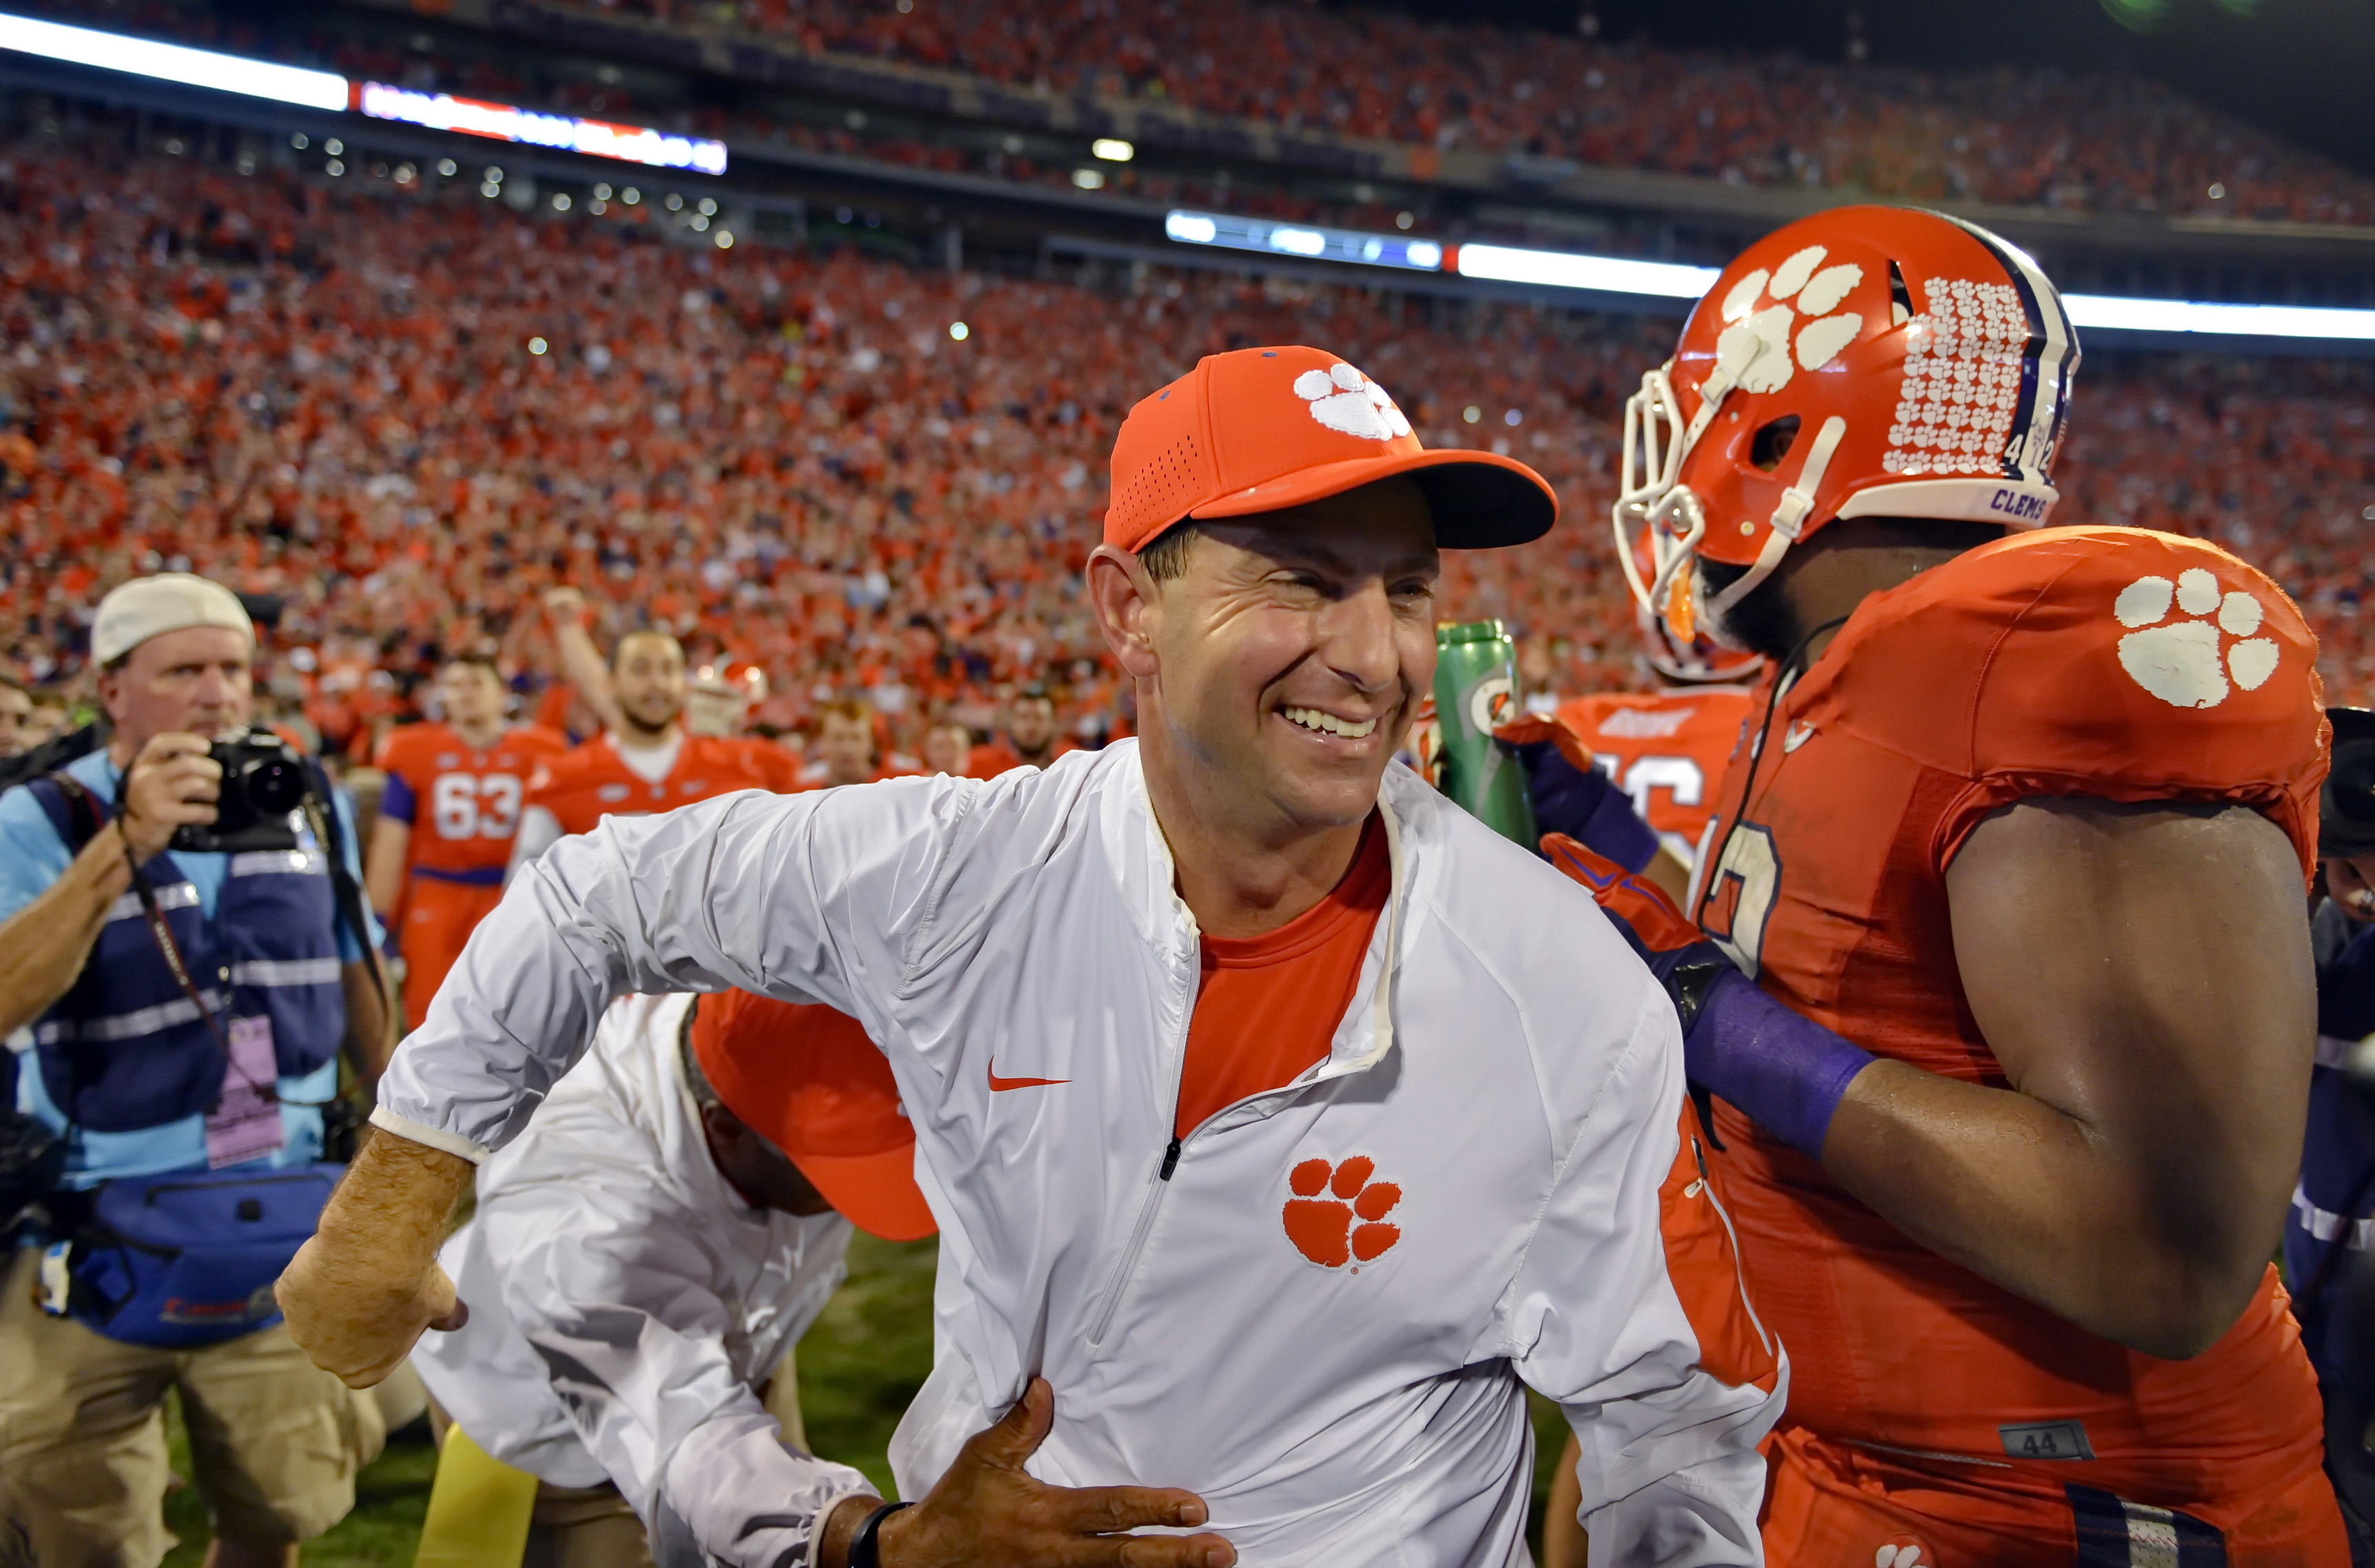 FILE - In this Nov. 7, 2015, file photo, Clemson head coach Dabo Swinney celebrates after their 23-17 win over Florida State in an NCAA college football game in Clemson,  S.C. Swinney has been named the AP coach of the year, Monday, Dec. 21, after leading the Tigers to an undefeated season and spot in the College Football Playoffs. (AP Photo/Richard Shiro, File)